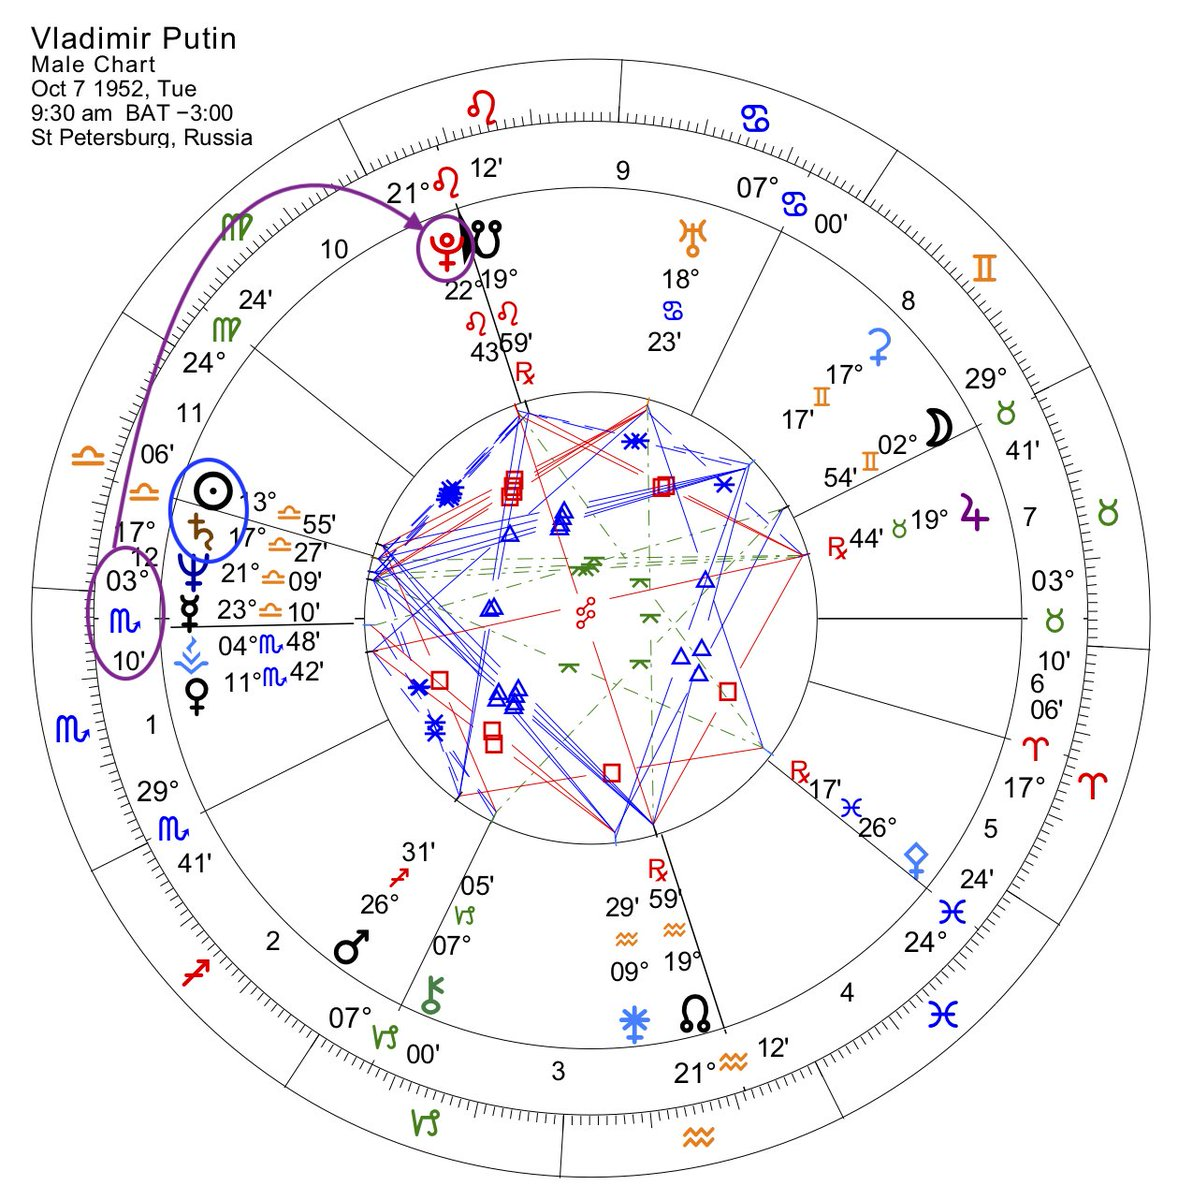 Pandora Astrology On Twitter A Libra On The World Stage With Sun Conjunct Authoritative Saturn And Scorpiorising Ruled By Pluto Closely Conjunct The Midheaven This Strong Willed Chart With A Self Protective Air Of